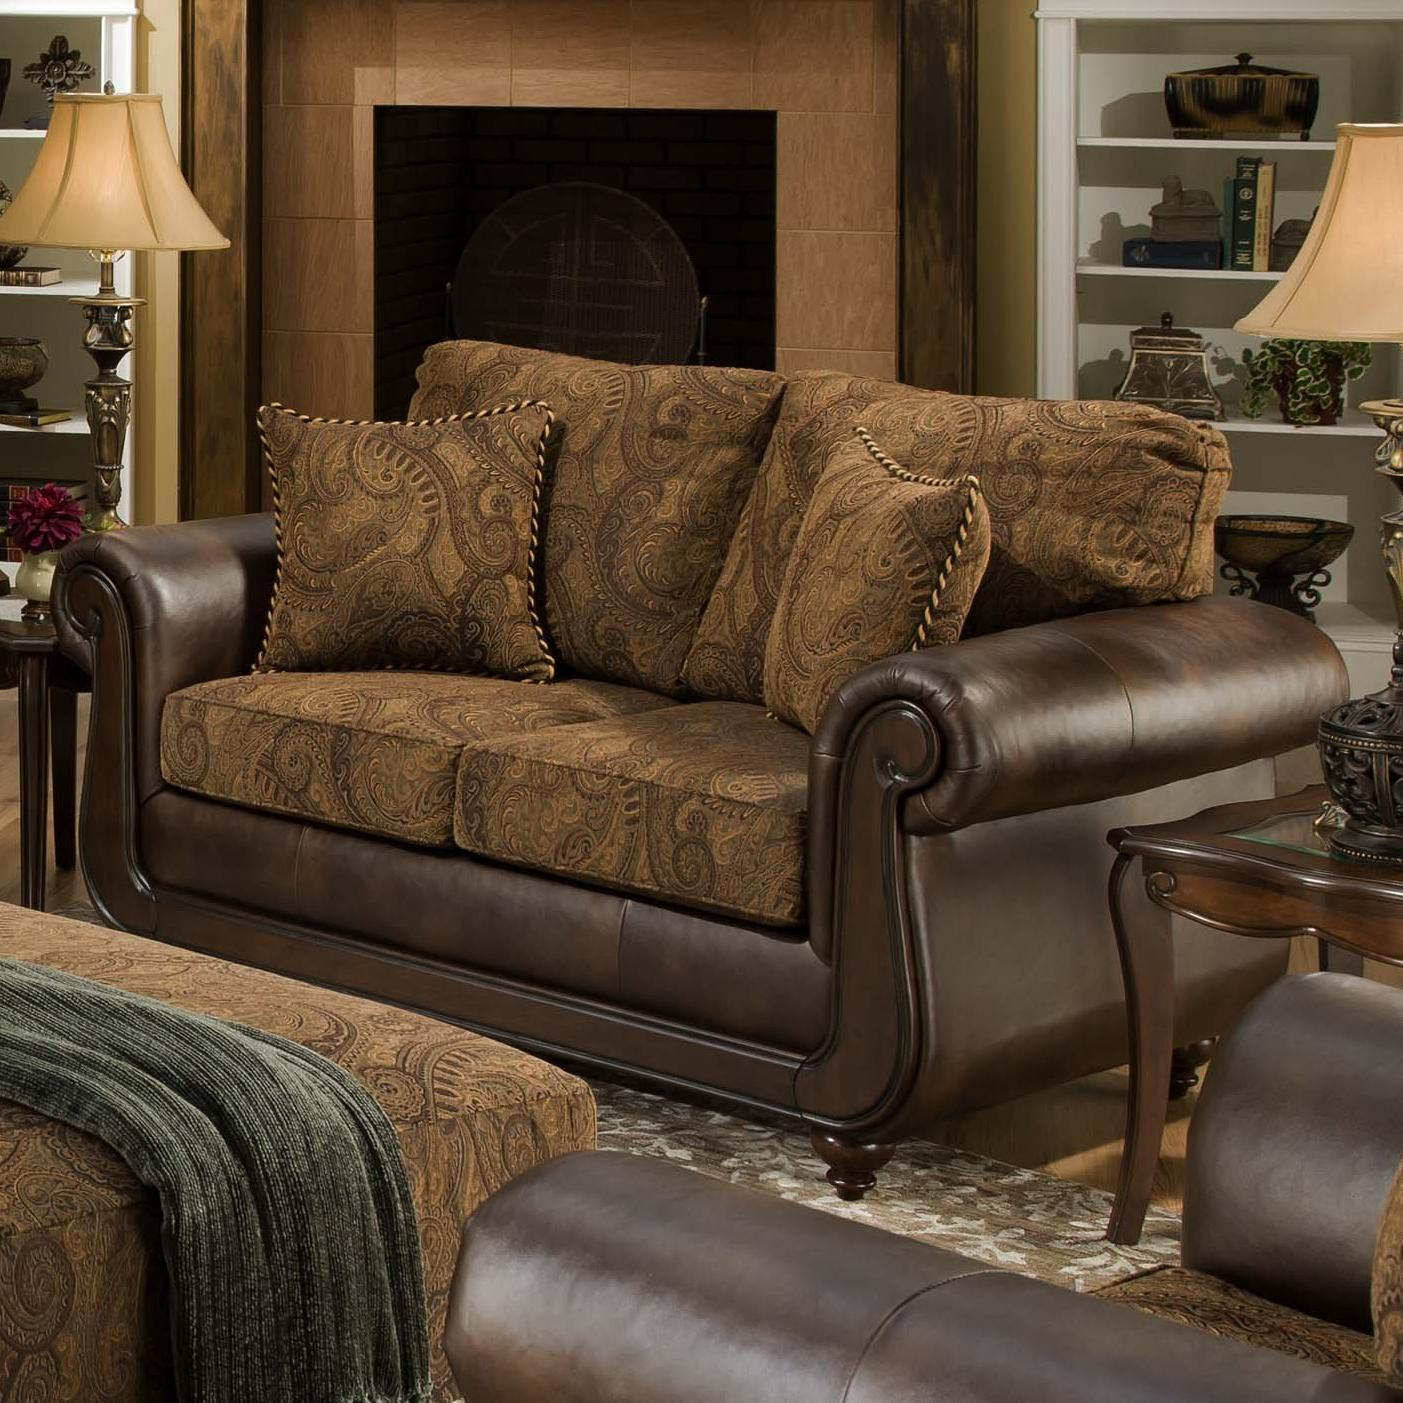 5850 Loveseat with Exposed Wood  by Peak Living at Prime Brothers Furniture